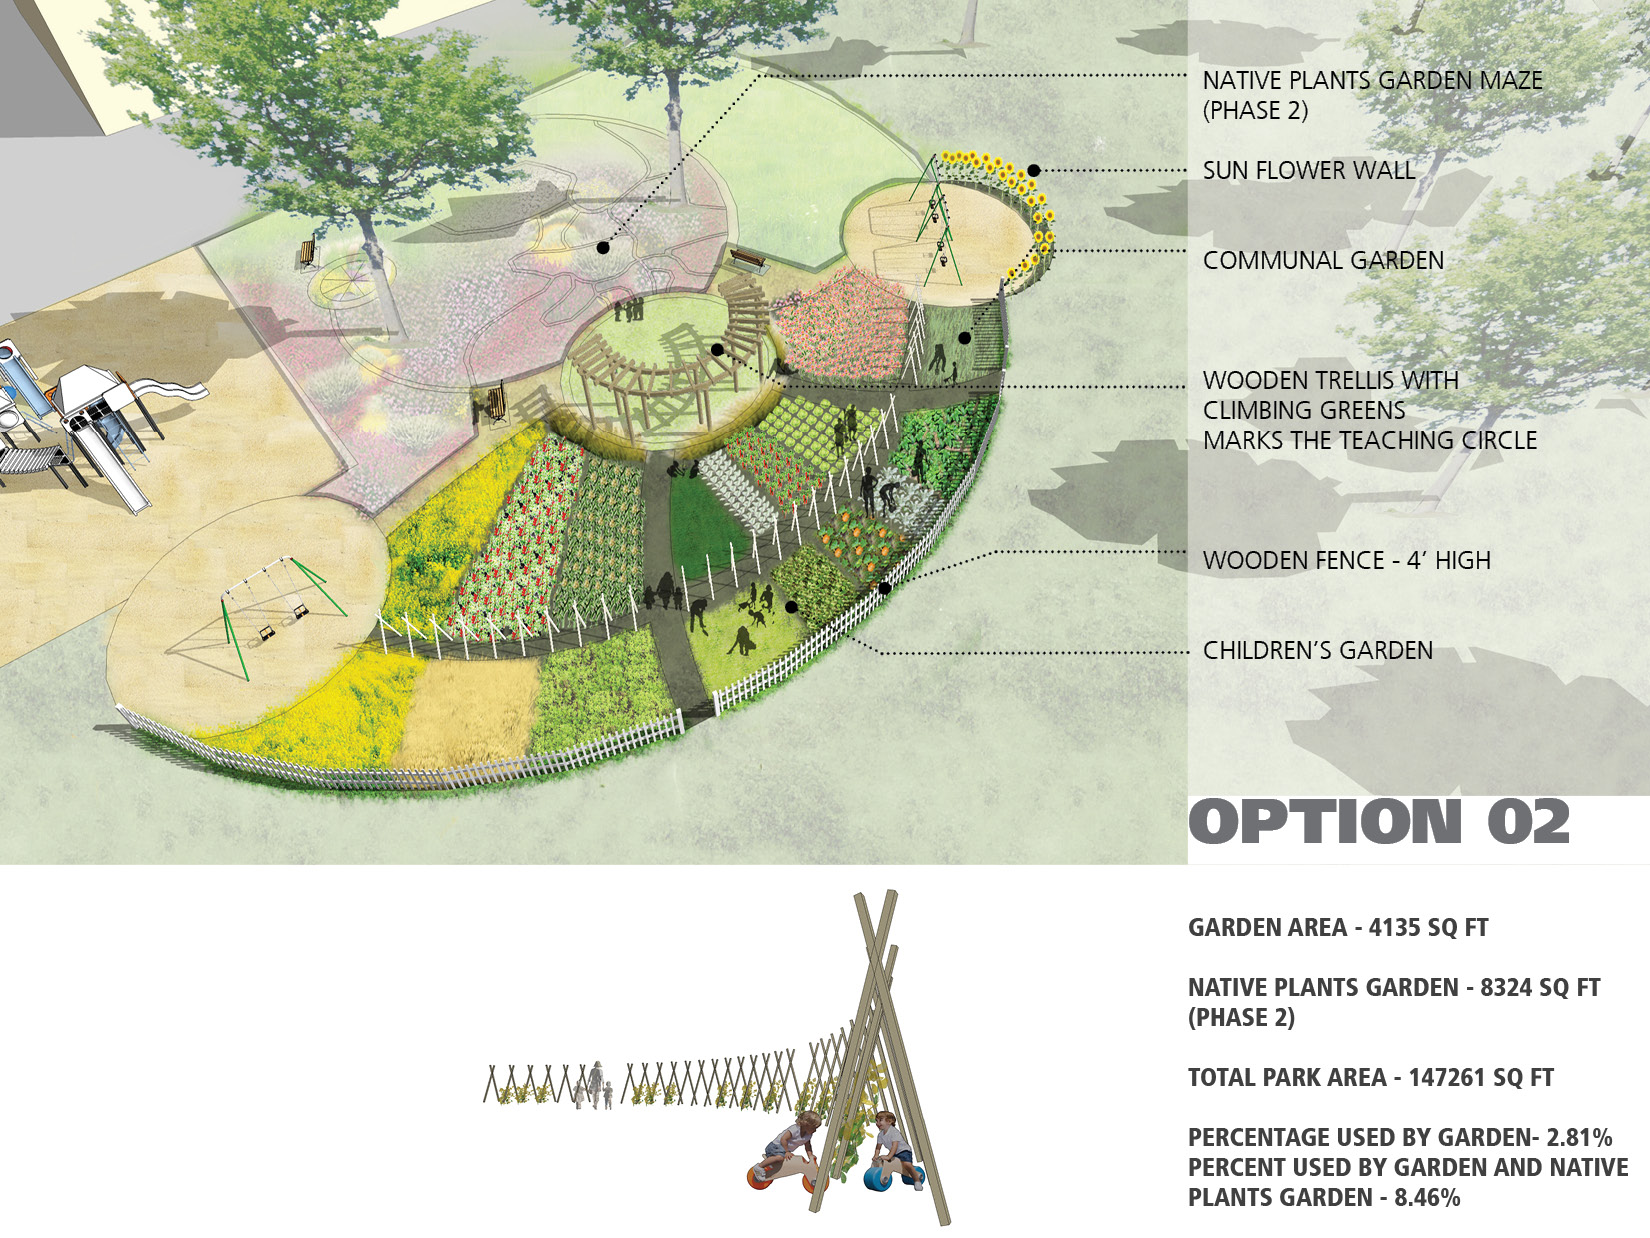 Garden designs dallington pollinators community garden for Garden design layout ideas